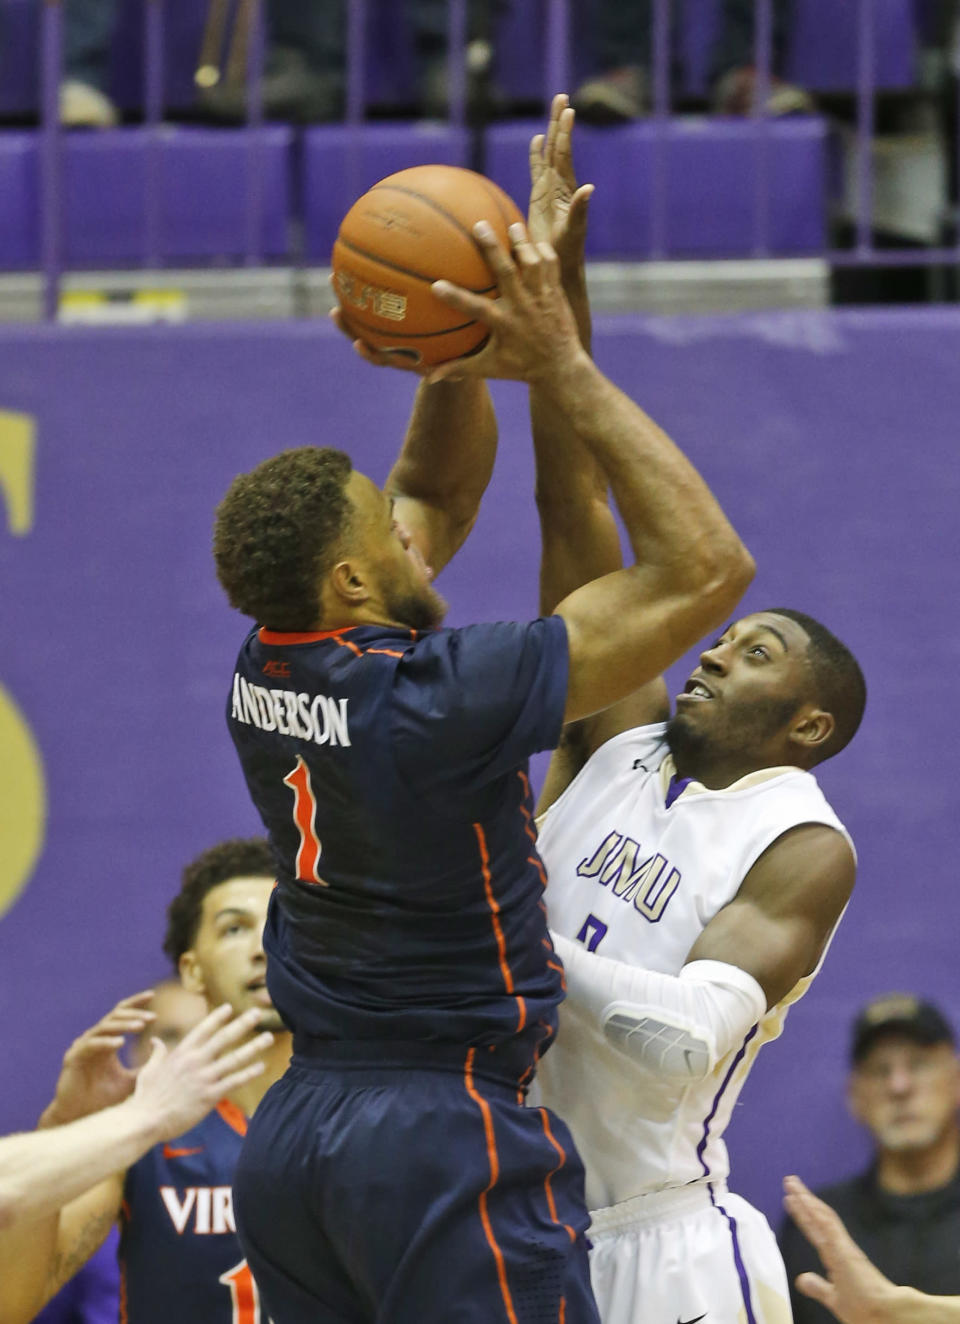 Virginia guard Justin Anderson (1) takes a shot over James Madison guard Ron Curry, right, during the second half of an NCAA college basketball game in Harrisonburg, Va., Friday, Nov. 14, 2014. Virginia won 79-51. (AP Photo/Steve Helber)